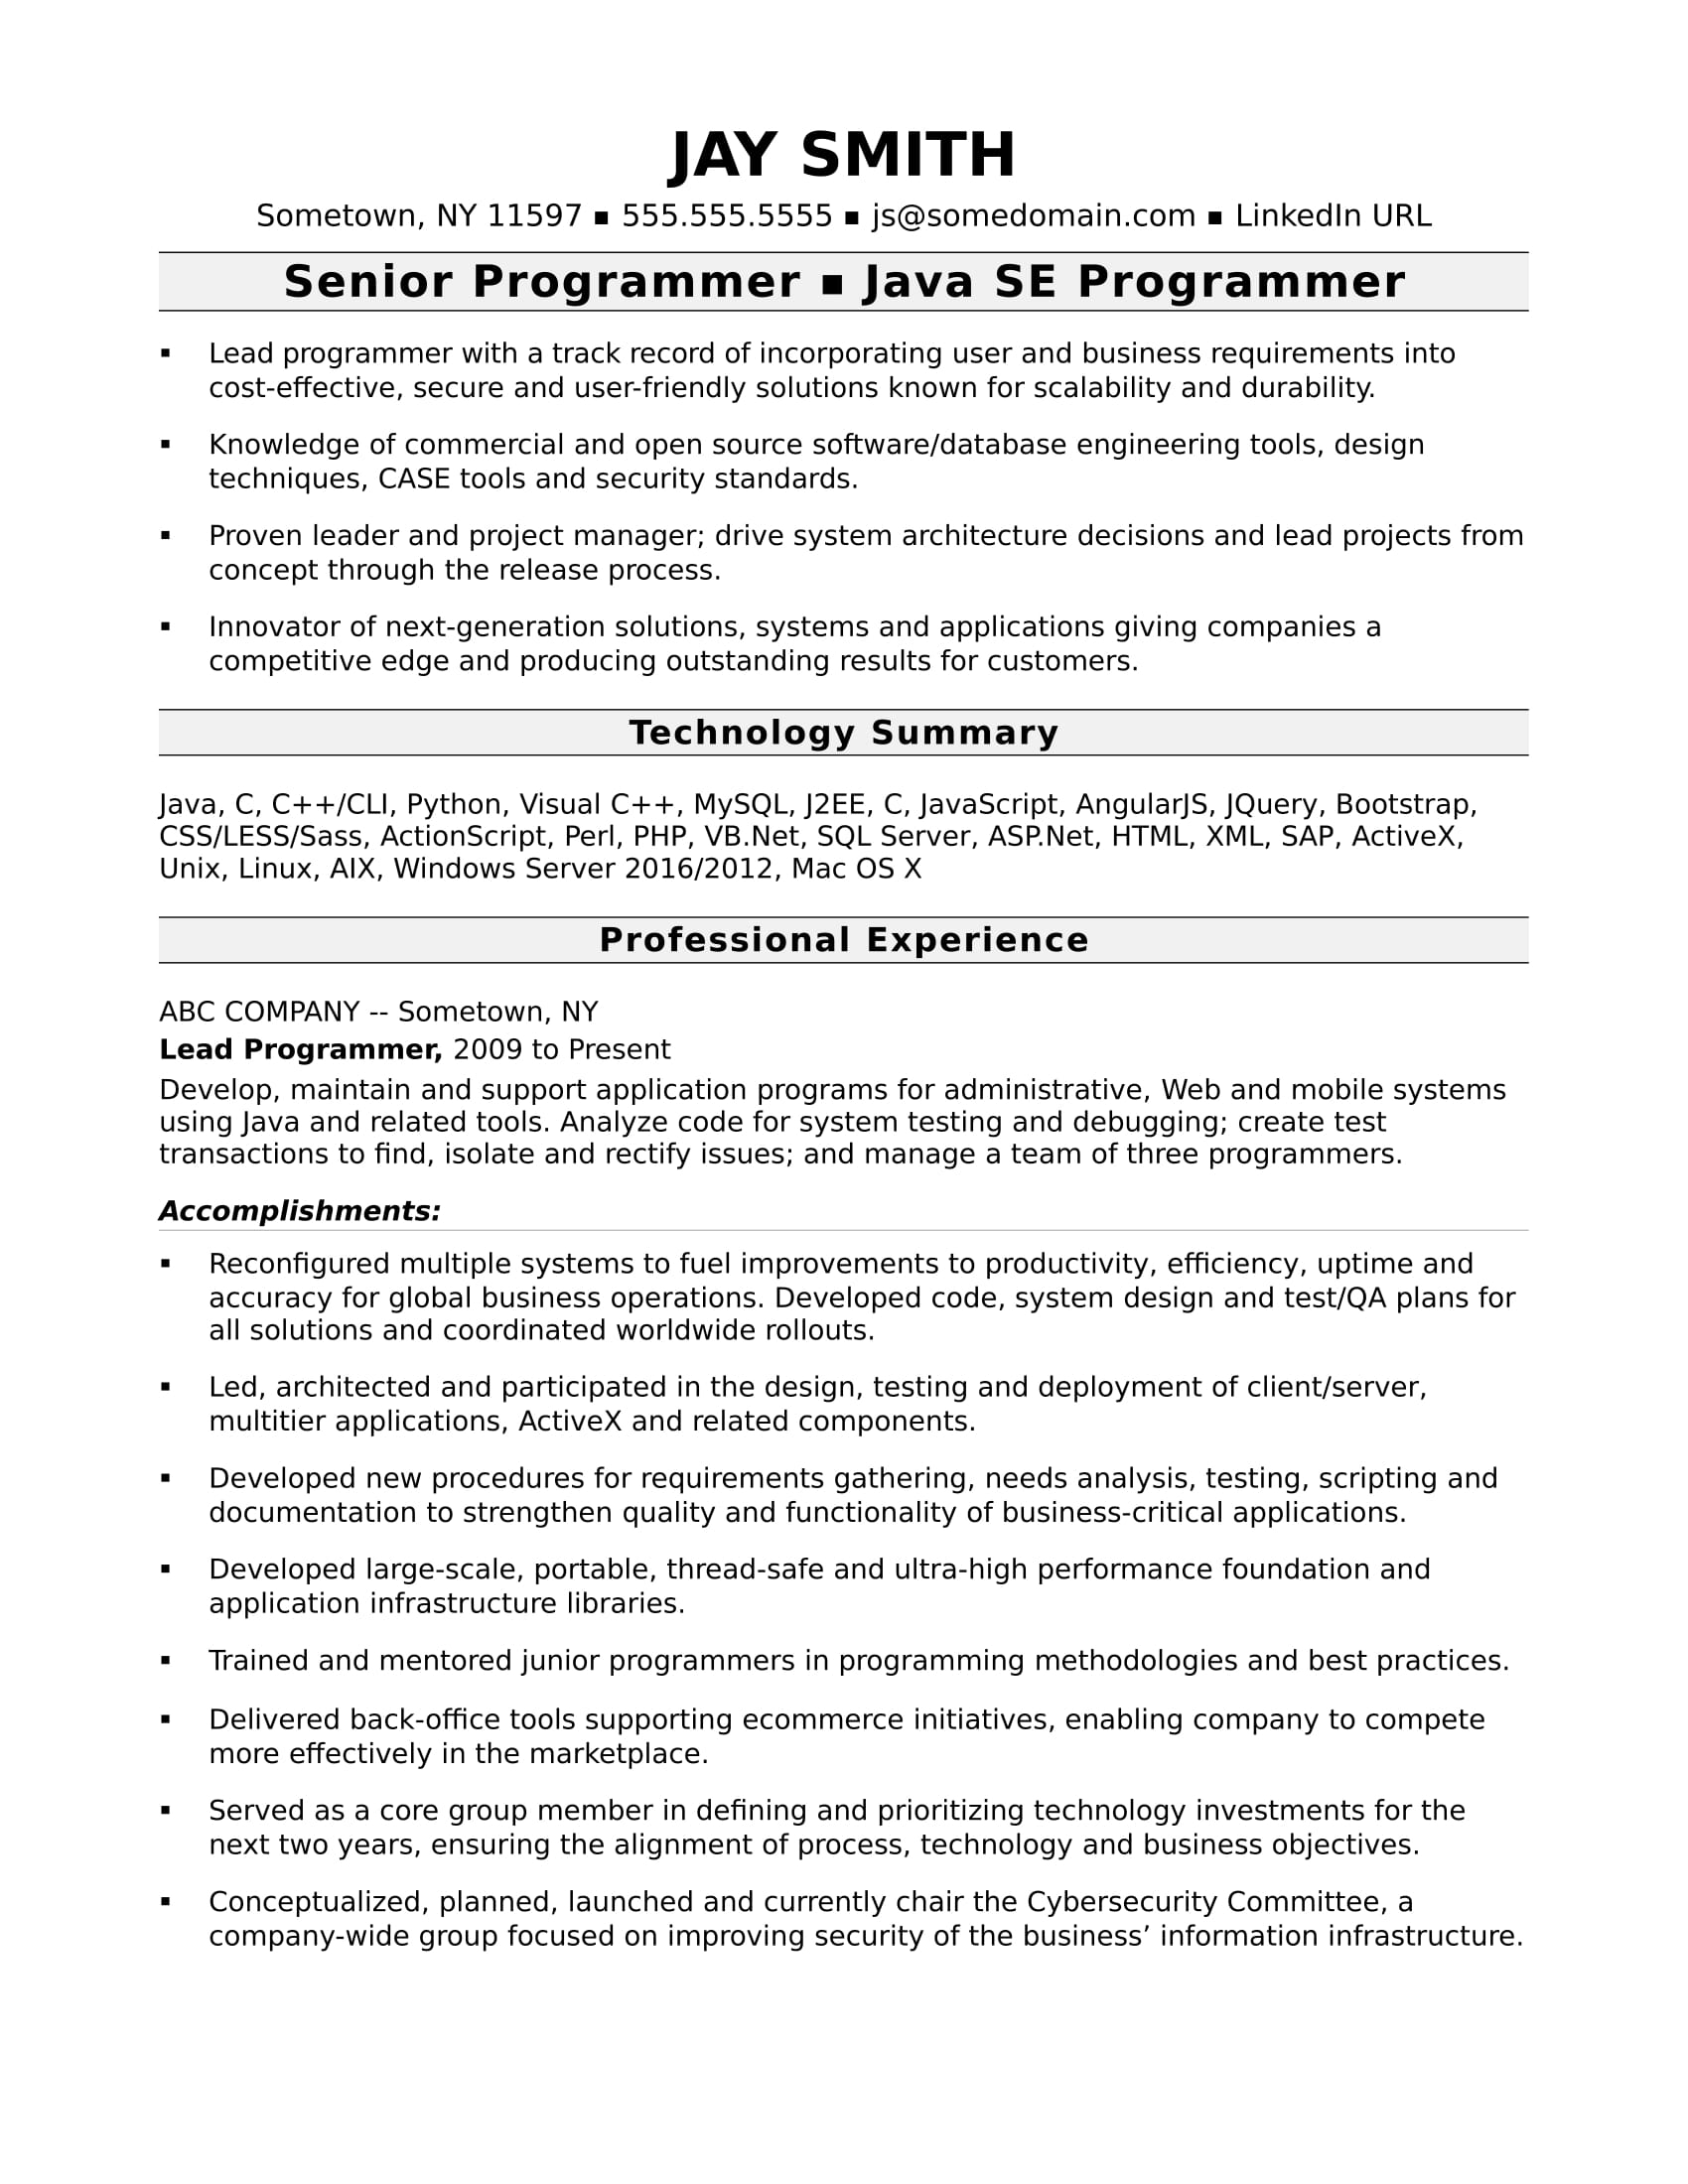 sample resume for an experienced computer programmer - Sample Resume